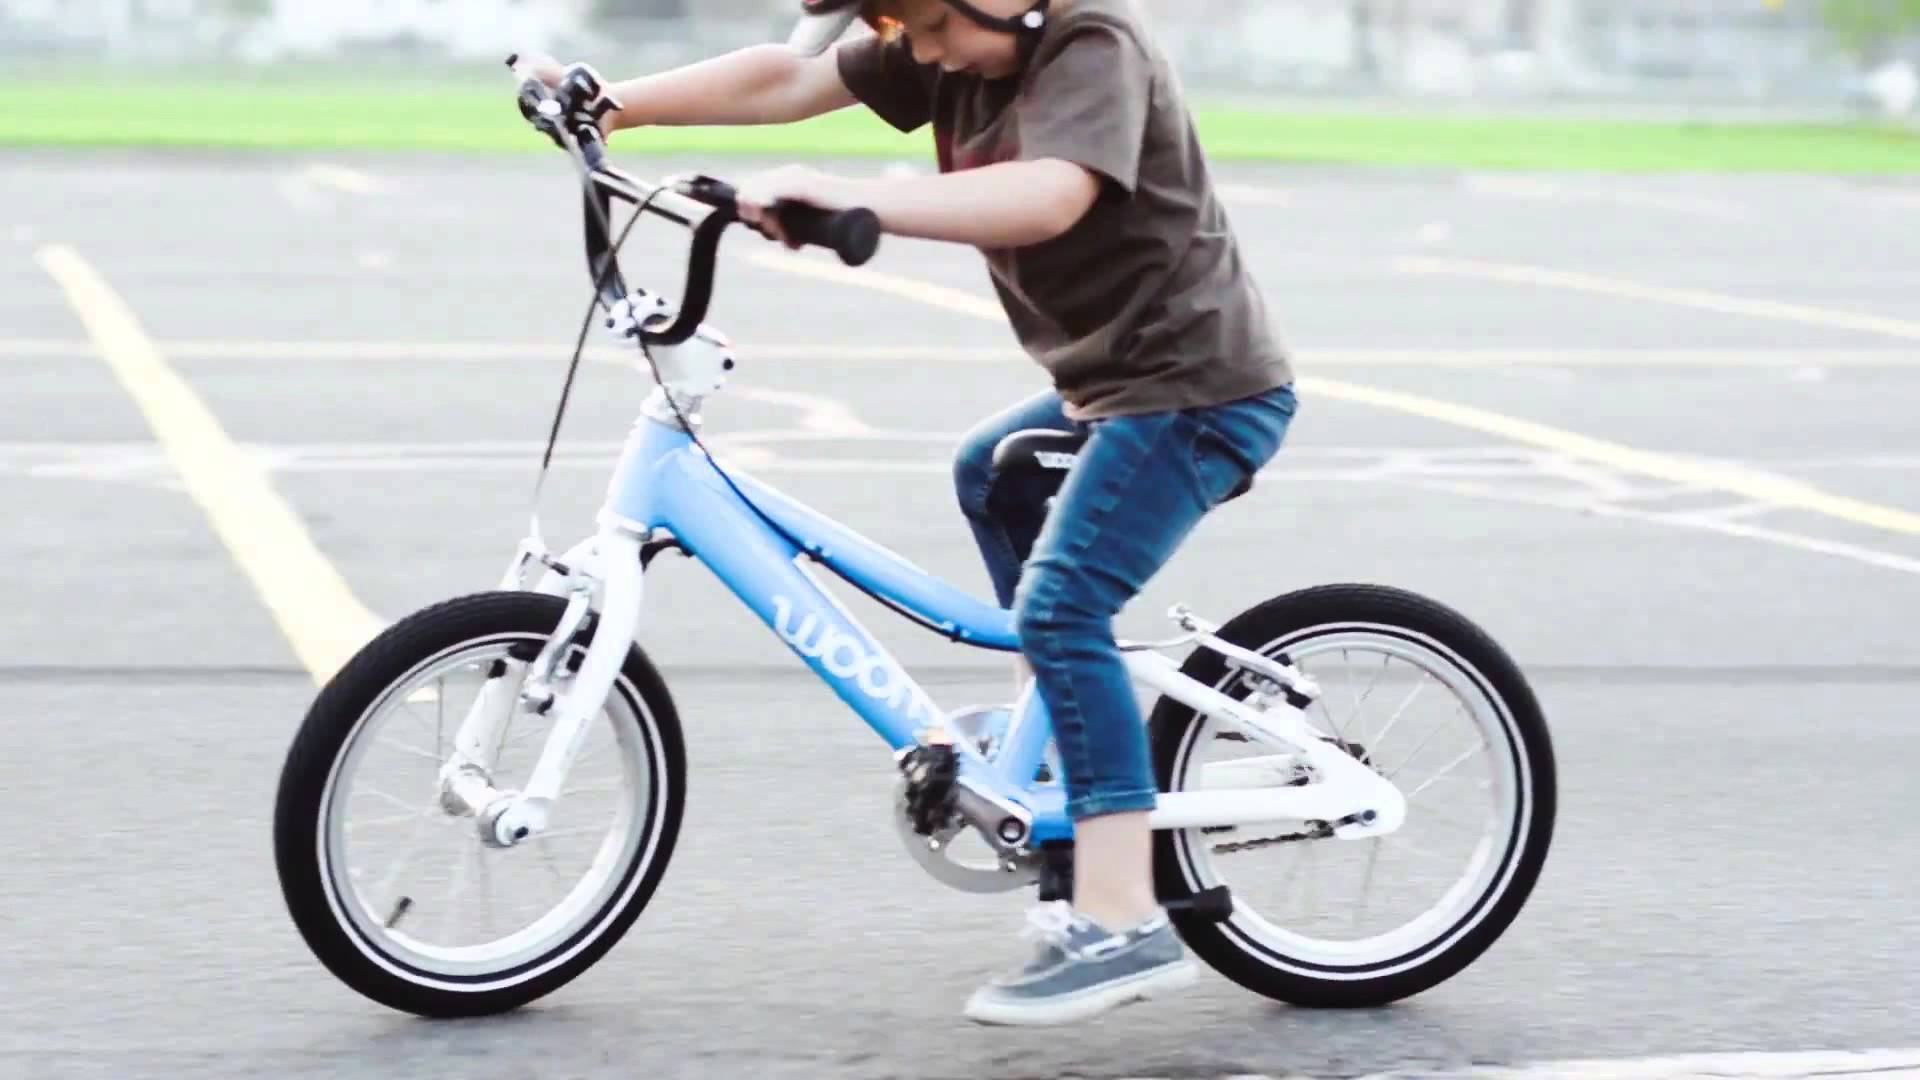 Teach your kid to ride a bike in 9 minutes - YouTube